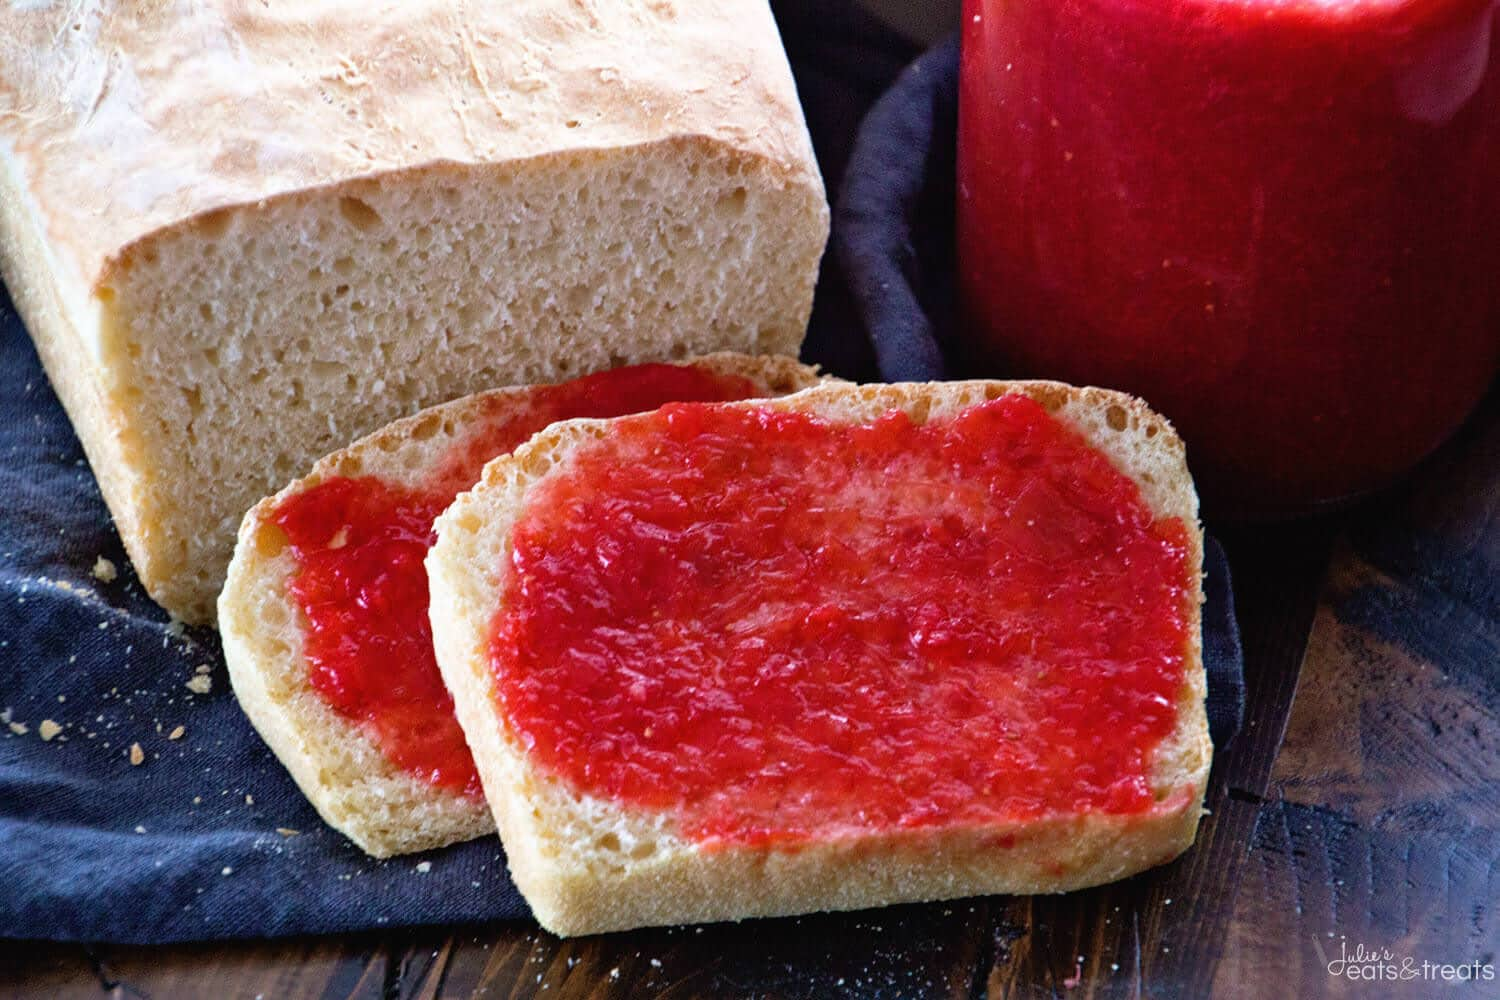 Slices of English Muffin bread with strawberry rhubarb jam on it and jar of jam in background